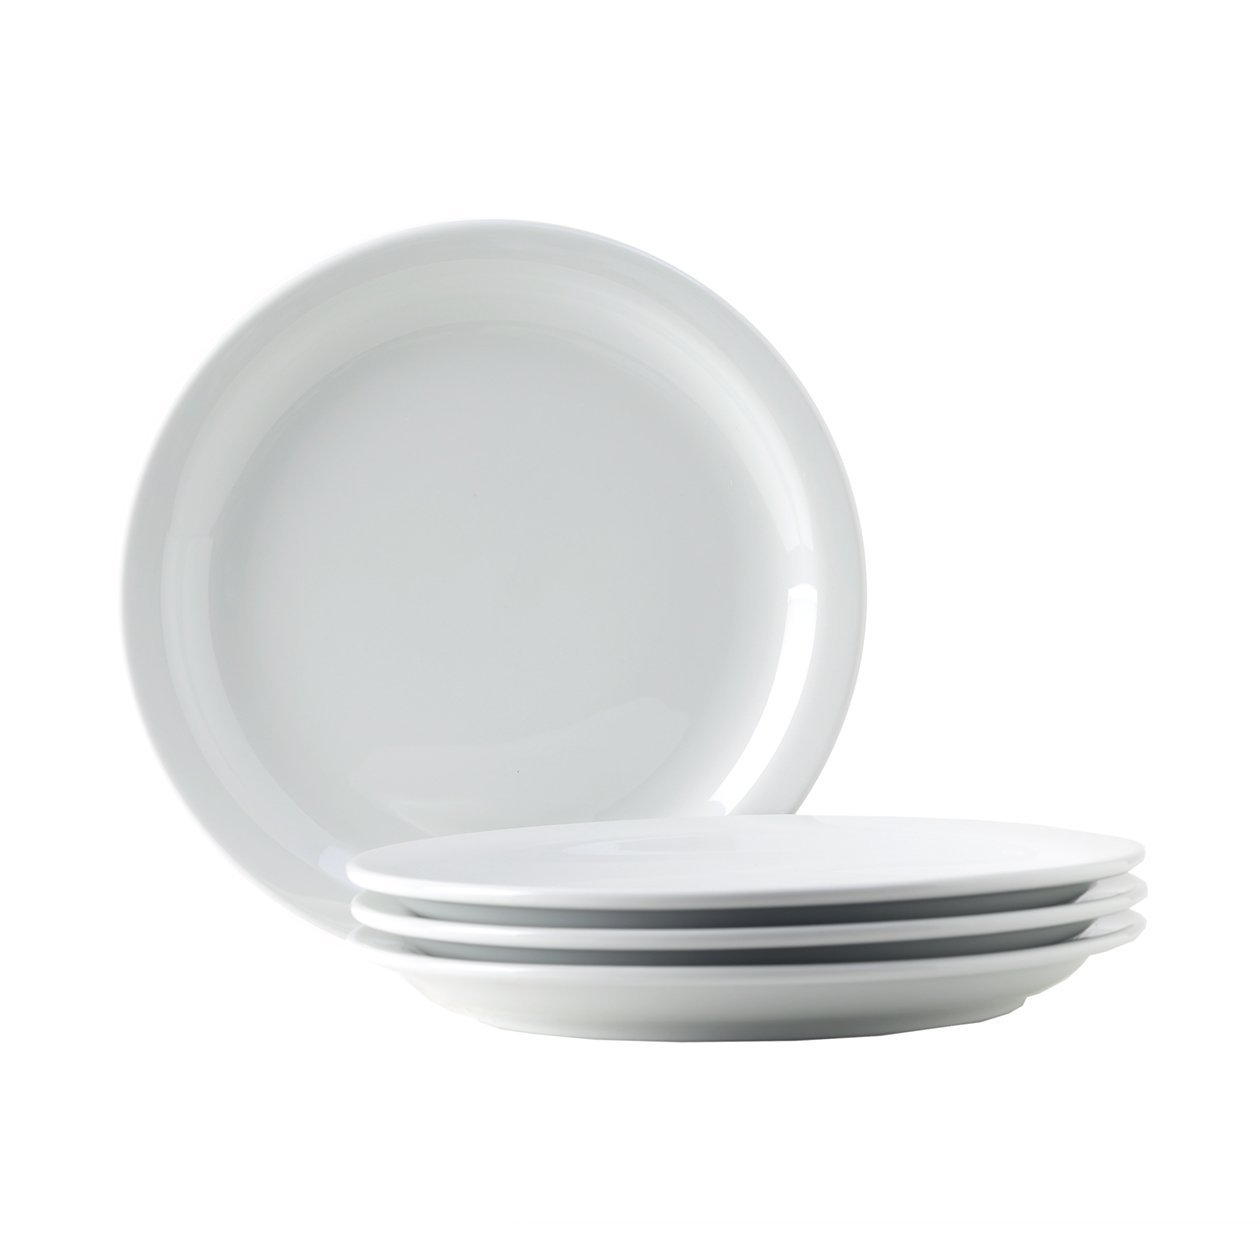 Tuxton Home Colorado Porcelain White 10-1/2''Narrow Rim Dinner Plate - Set of 4; Heavy Duty; Chip Resistant; Lead and Cadmium Free; Freezer to Oven Safe up to 500F